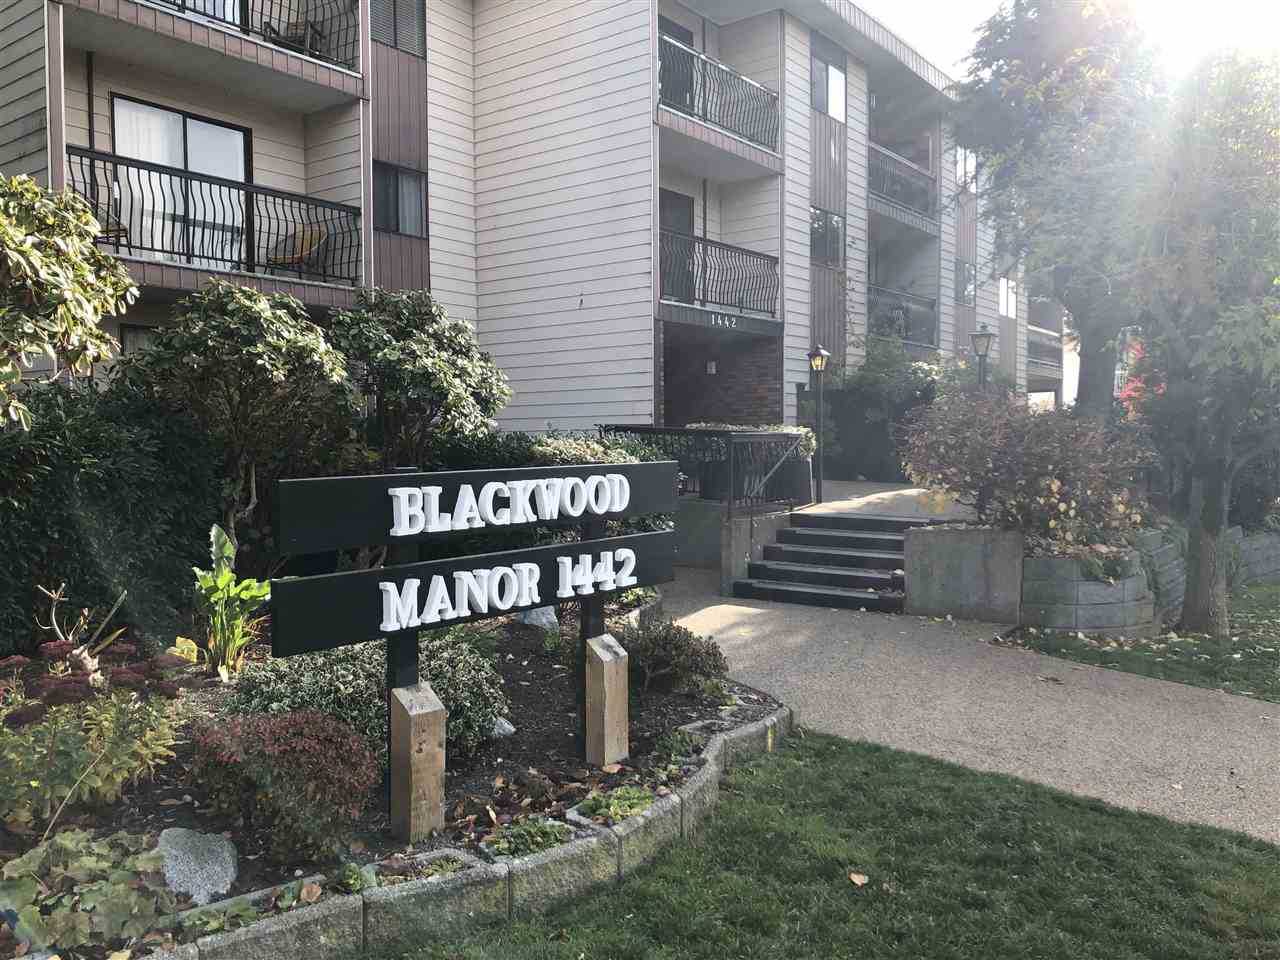 209 1442 BLACKWOOD STREET - MLS® # R2419194